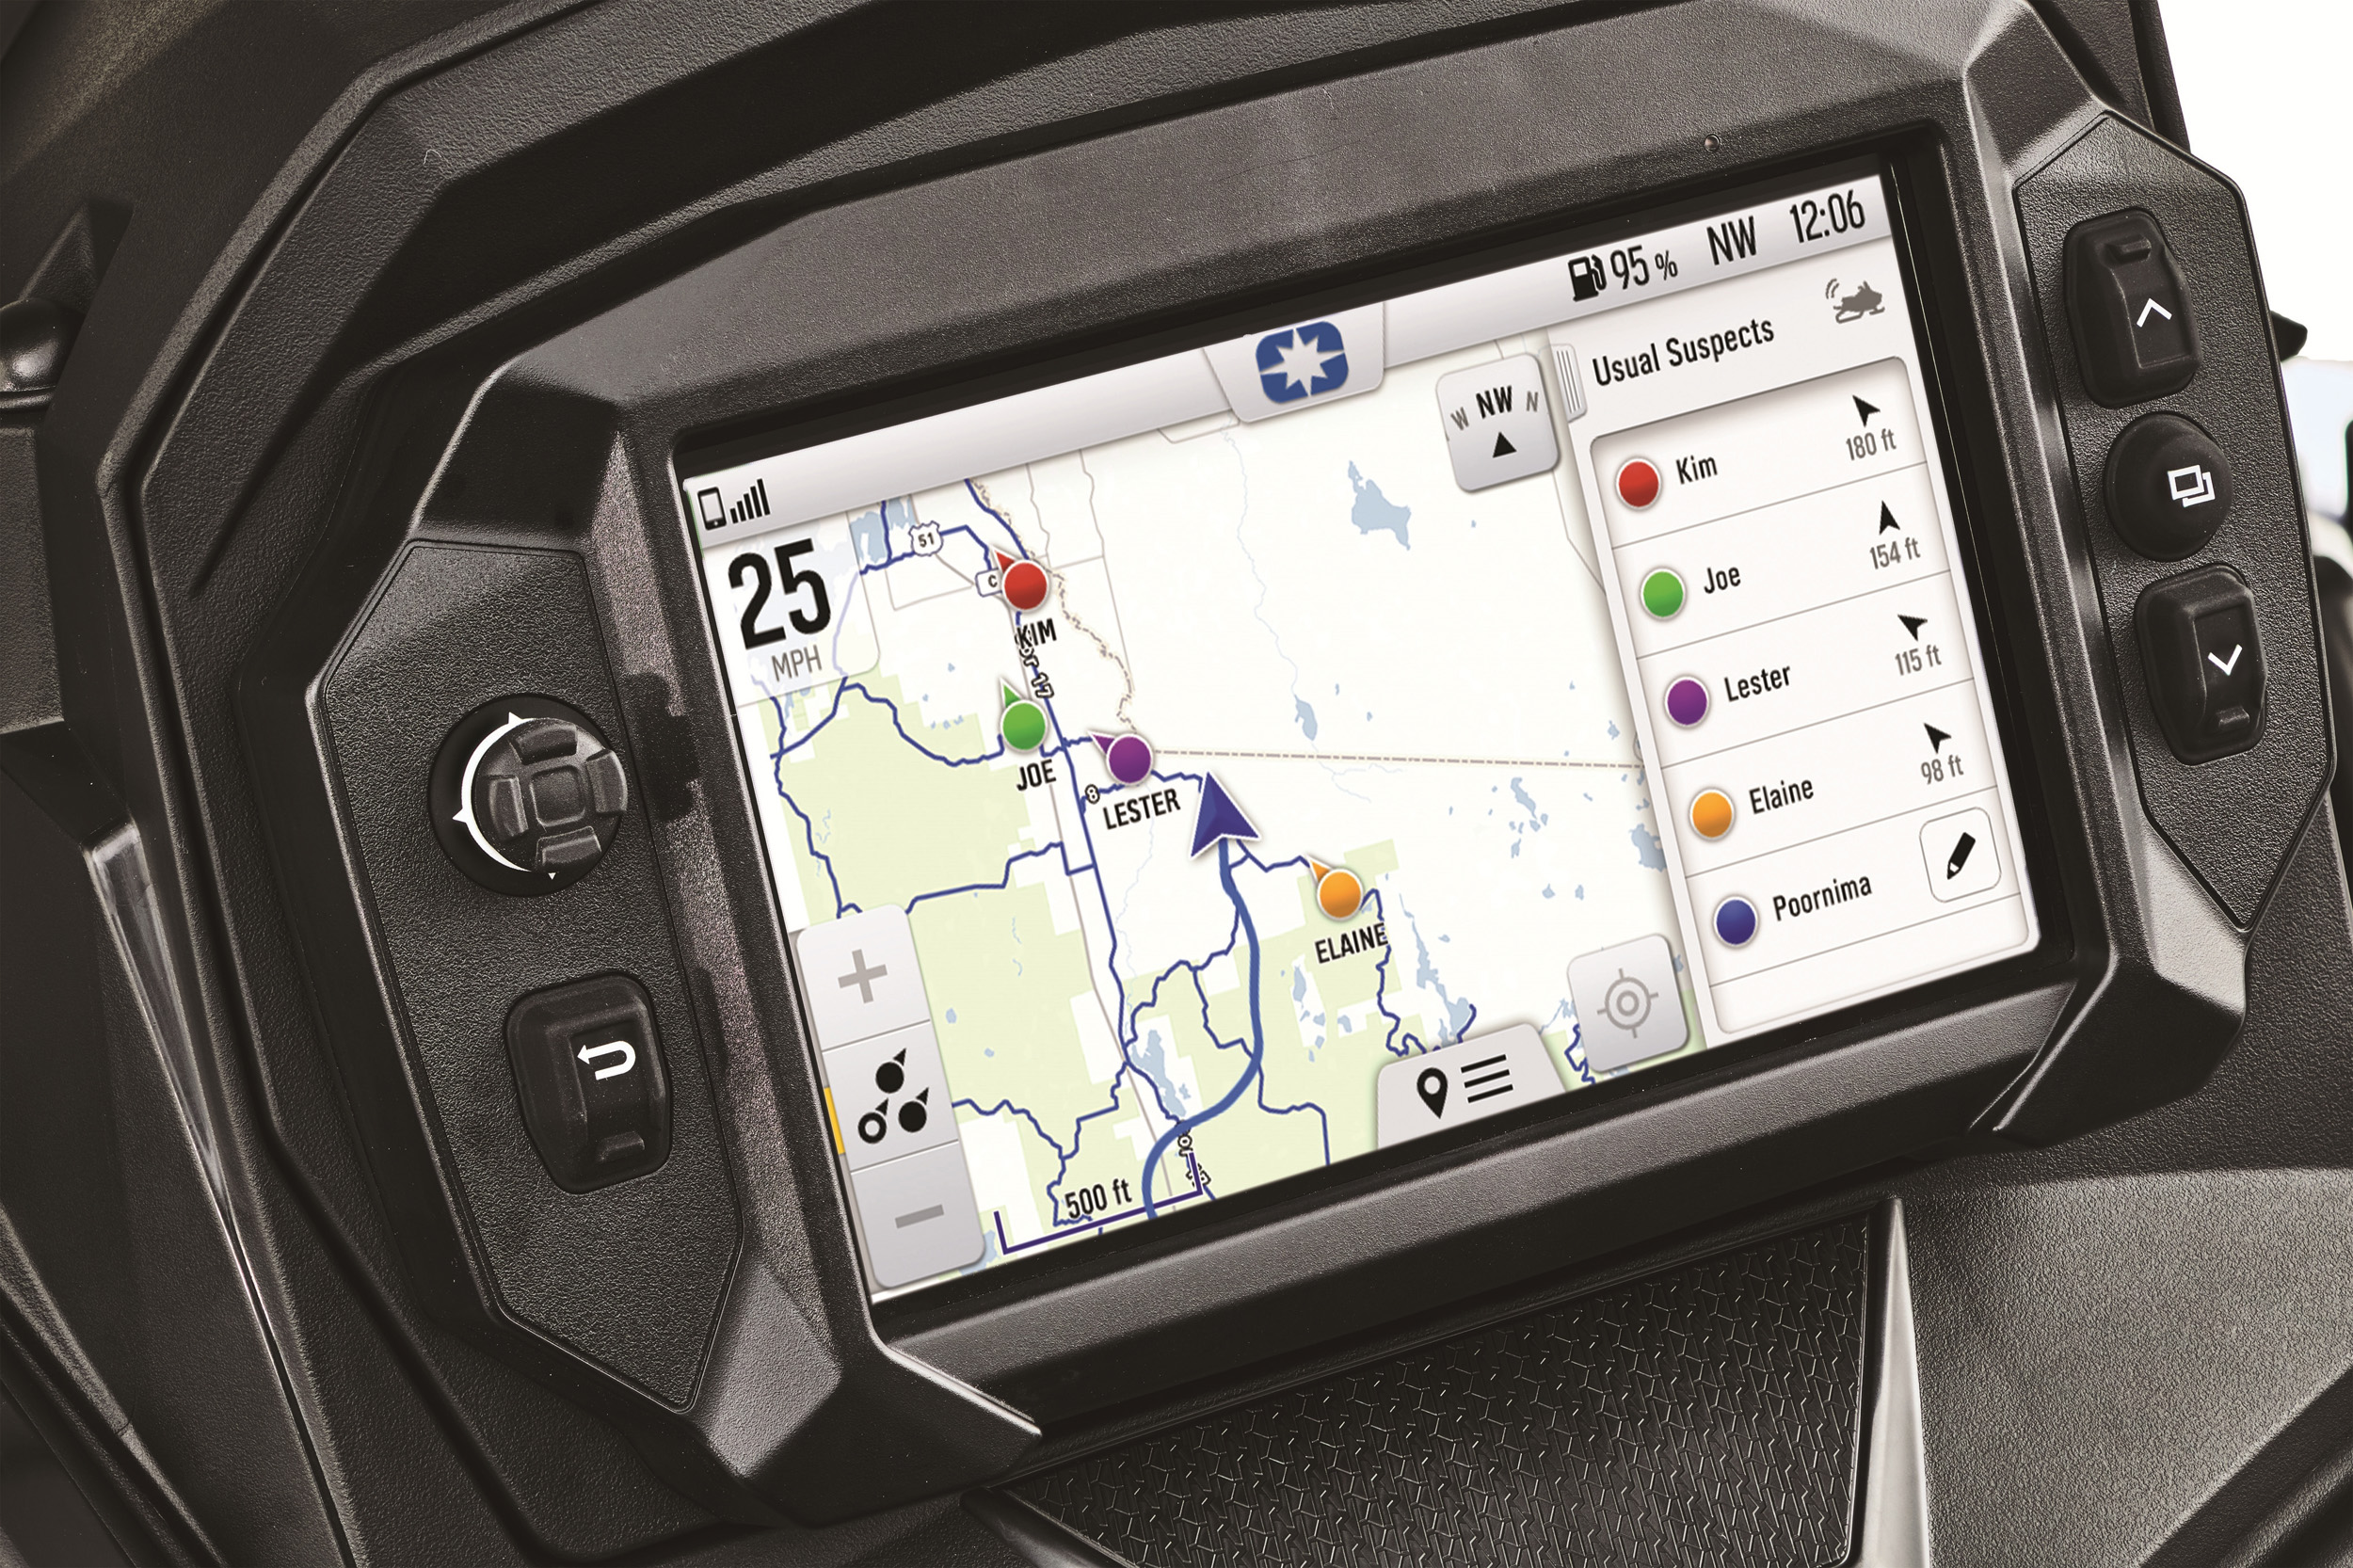 The new 7S Display is equipped with exclusive Polaris Ride Command Technologys